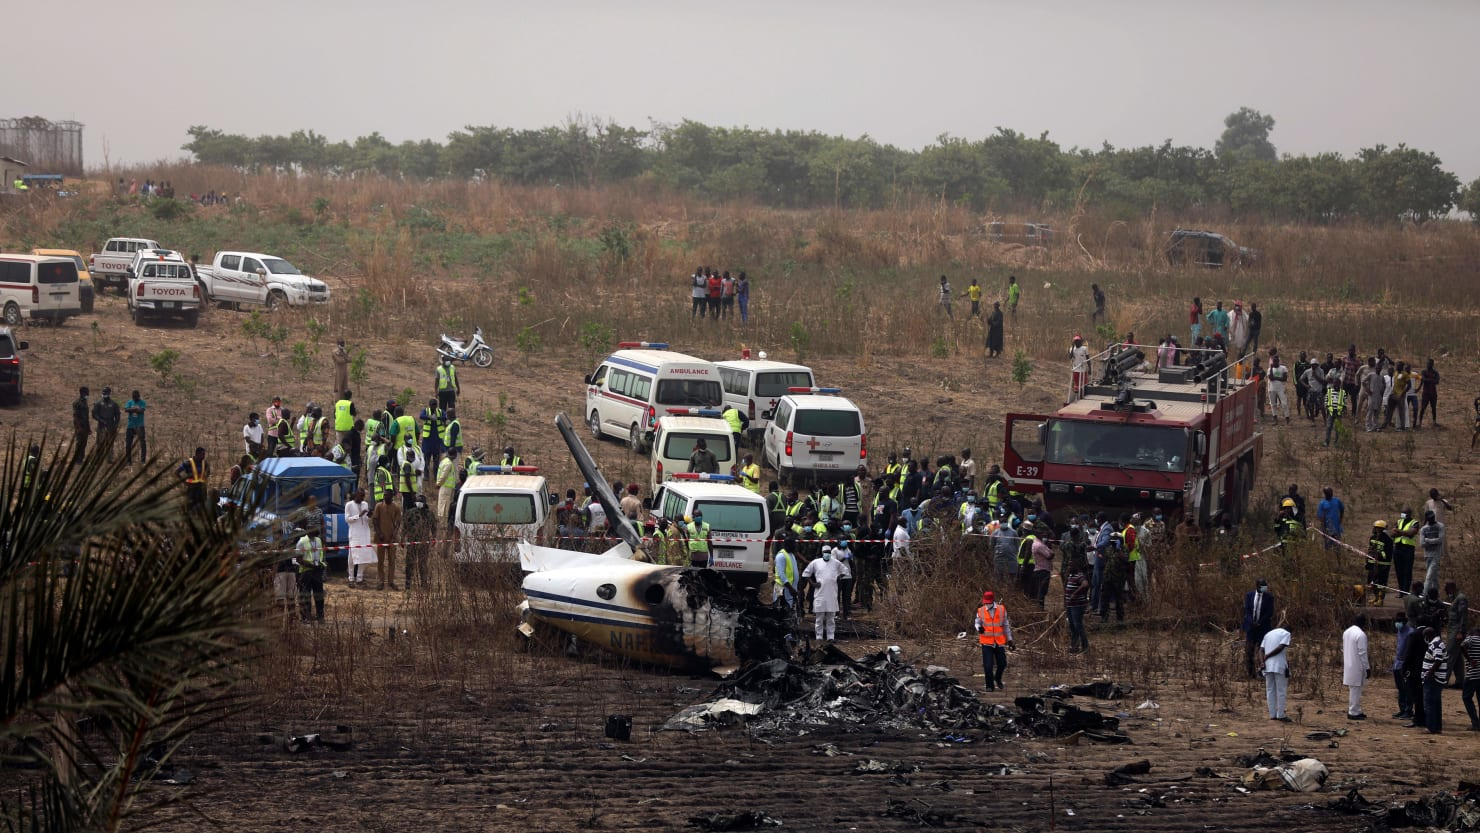 Officers killed in Nigeria plane crash were close to finding location of kidnapped students